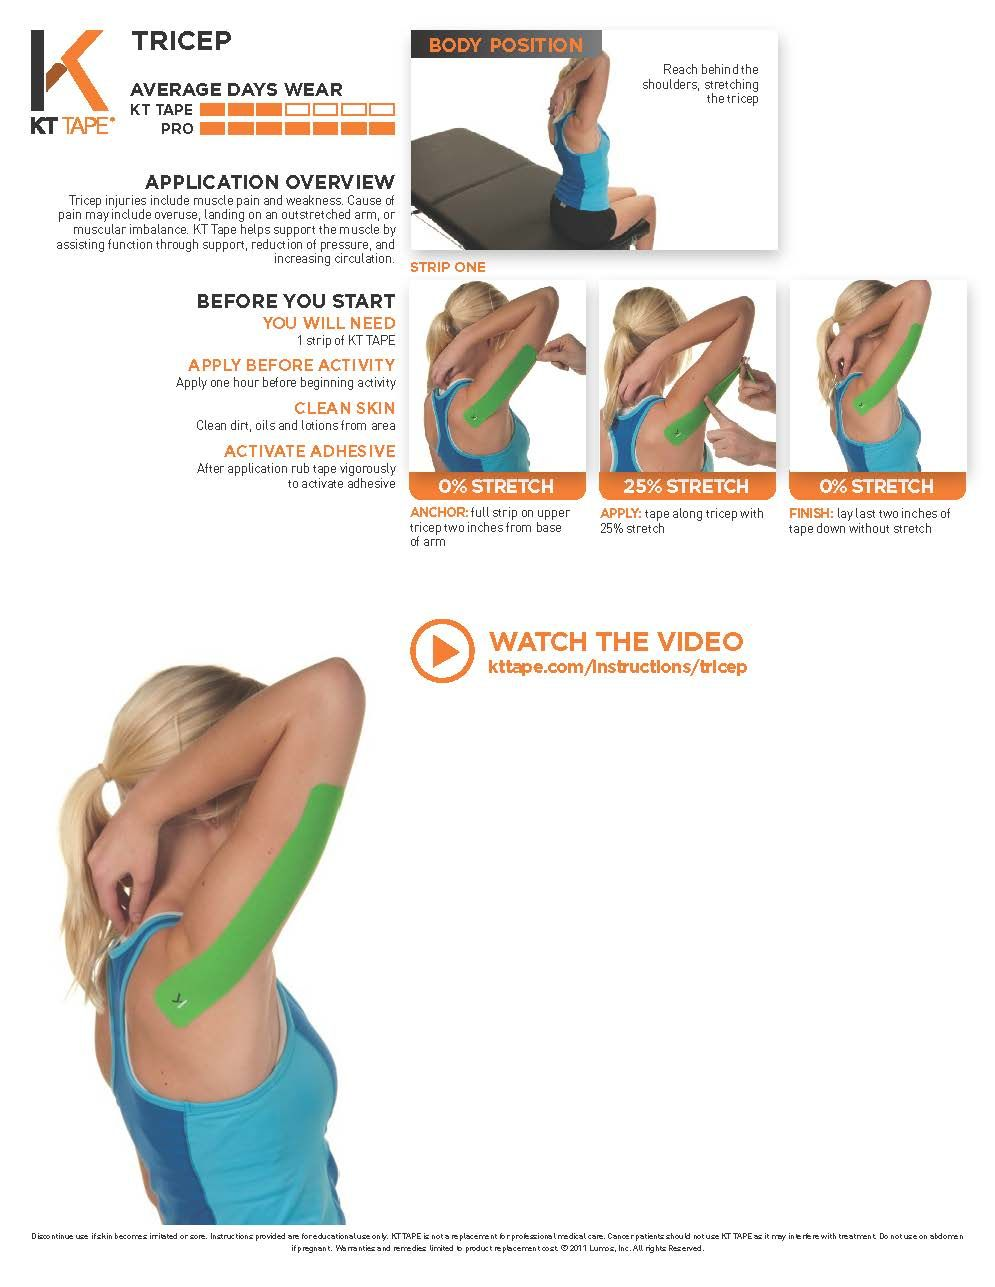 Tricep Injuries Include Muscle Pain And Weakness Cause Of Pain May